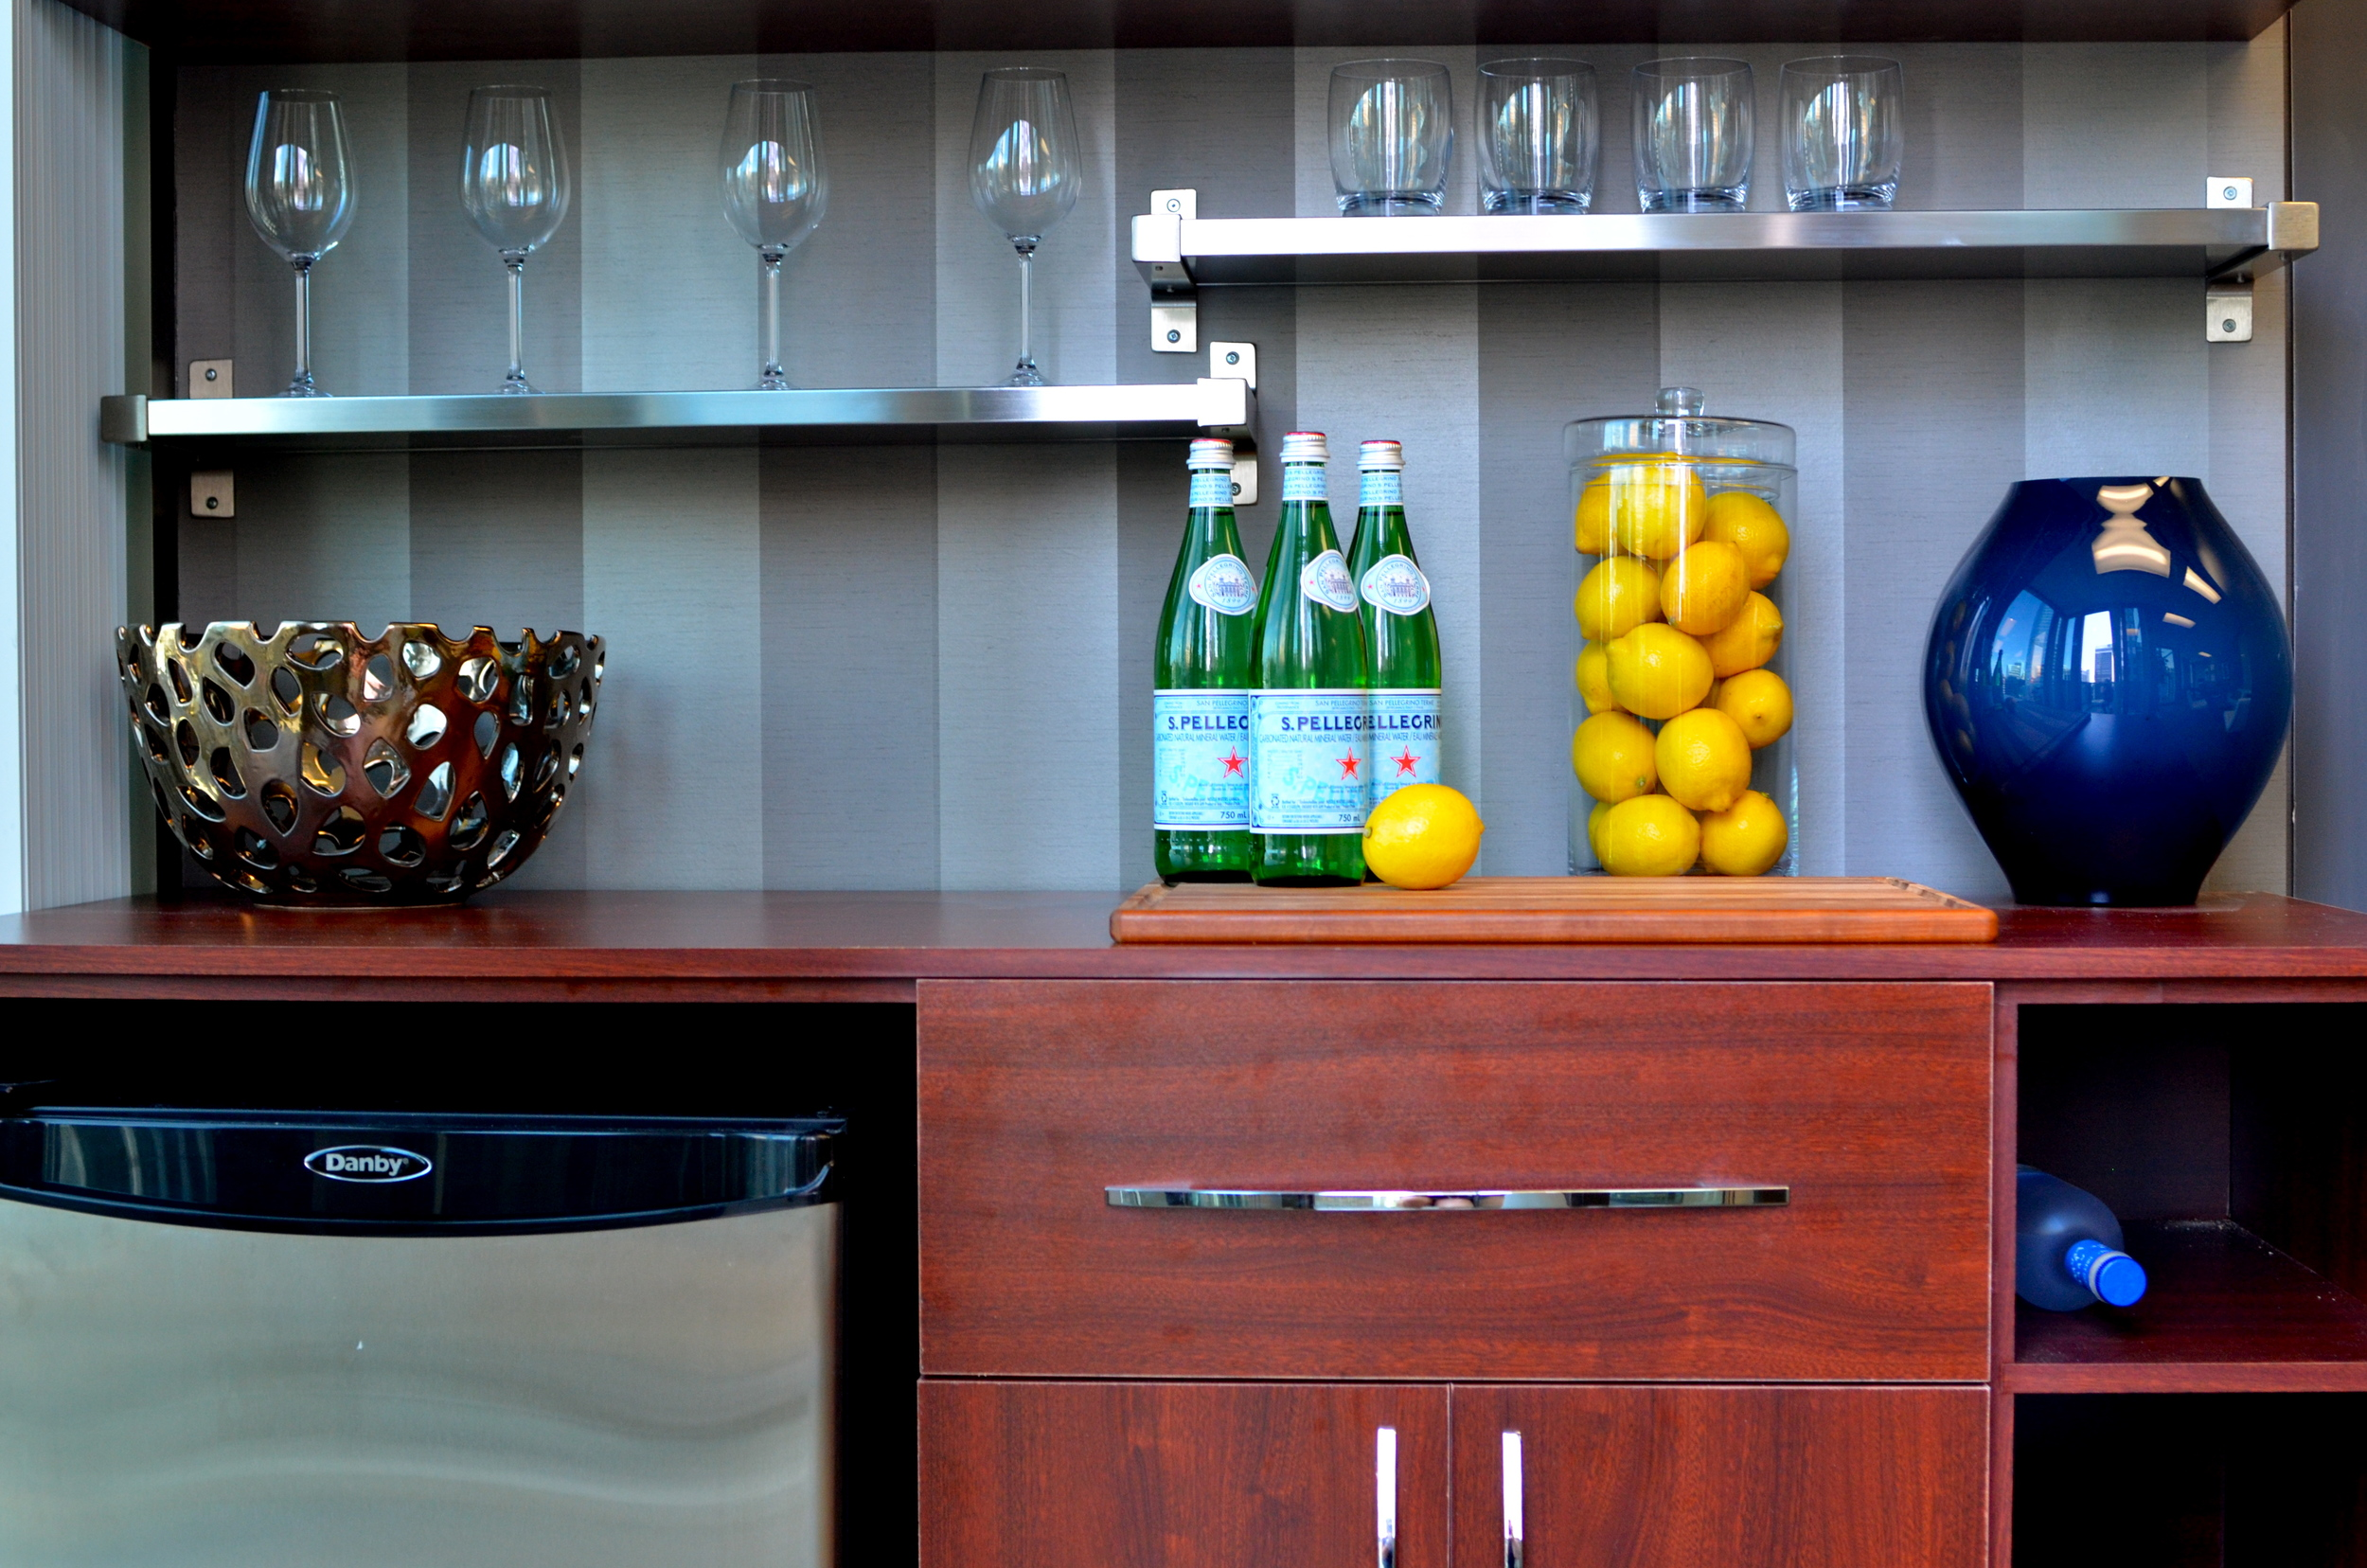 Corporate interior designers vancouver, corporate interior designers burnaby, corporate interiors vancouver, office interior designers vancouver, office interior designers burnaby, office designers vancouver, office designers burnaby, Commercial interior design vancouver, commercial interior design burnaby, commercial interior designers north vancouver, spa interior designers vancouver, Traditional interior design, traditional interior design vancouver, traditional interior design burnaby, traditional kitchen design burnaby, traditional kitchen design vancouver, Bedroom interior design Burnaby, bedroom interior design vancouver, Transitional interior design vancouver, transitional interior design burnaby, Ultra modern kitchen vancouver, ultra modern interior design burnaby, ultra modern condo design vancouver, contemporary kitchens Vancouver, Contemporary interior designed kitchens, kitchen interior design burnaby, contemporary kitchen interior design Vancouver, Harrison hot springs, Harrison hot springs interior design, chilliwack interior design, interior designers chilliwack, interior designers harrison hot springs, Bed and breakfast design, Hospitality interior design vancouver, hospitality interior design, Hospitality interior designers vancouver, hospitality decor, New build hospitality interiors, New build homes vancouver, new build homes richmond, new build homes north vancouver, new build homes whistler, contracting vancouver, contracting richmond, contracting north vancouver, contracting whistler,Interior design vancouver, Vancouver interior designers, condo renovations richmond, richmond interior designers, Renovations, Interior design, millwork design, millwork design vancouver, interior design north vancouver, interior design Burnaby, interior design richmond, full service interior design, renovations, burnaby, renovations vancouver, renovations richmond, renovations north vancouver, renovations whistler, renovations coquitlam, interior design whistler, interior design north vancouver, new construction homes burnaby, new construction homes vancouver, new construction homes whistler, new construction homes surrey, residential interior design burnaby, residential interior design vancouver, residential interior design north vancouver, residential interior design whistler, condo interior design vancouver, condo interior design burnaby, interior decor, interior design, interior styling, kitchen design vancouver, kitchen design burnaby, kitchen design richmond, kitchen design Vancouver, kitchen design north vancouver, living room interior design vancouver, bathroom interior design vancouver, kitchen interior design burnaby, staircase burnaby, staircase vancouver, staircase richmond, decoration vancouver, qualified interior designer burnbay, qualified interior designer vancouver, best interior designers vancouver, best interior designers burnaby, best interior designers richmond, best interior designer north vancouver, top interior designers vancouver, top interior designer burnaby, top interior designer north vancouver, top interior designers richmond, Home staging vancouver, home staging burnaby, home staging richmond, home staging north vancouver, Realestate Vancouver, Realestate Burnaby, Steakhouse design vancouver, interior design vancouver, commercial design Vancouver, Hospitality design vancouver, Hospitality interior design vancouver, commercial interior design vancouver, corporate interior design vancouver, restaurant design vancouver, restaurant interior design vancouver, interior design vancouver, interior designer vancouver, interior designers vancouver, Interior design Burnaby, commercial design burnaby, commercial interior design vancouver, hospitality design burnaby, hospitality interior design vancouver, restaurant design burnbay, restaurant interior design burnaby, corporate design burnaby, corporate interior design burnaby, best interior designers burnaby, best interior designers vancouver, best interior design vancouver, best interior design burnaby, top interior designers vancouver, top interior designers burnaby, award winning interior designers vancouver, award winning interior designers burnaby, residential interior designers burnaby, residential interior design burnaby, residential interior designers vancouver, residential interior design vancouver, home design vancouver, home design burnaby, home designers vancouver, home designers burnaby, home interior design burnaby, home interior design vancouver, home interior designers vancouver, home interior designer burnaby, home interior designer vancouver, Hospitality projects vancouver, hospitality projects burnaby, new construction homes vancouver, new construction homes burnaby, new construction home vancouver, new construction home burnaby, new construction, construction burnaby, construction Vancouver, renovations burnaby, renovations vancouver, home renovations vancouver, home renovations burnaby, interior decorating vancouver, home decorating burnaby, hire a designer Burnaby, hire a designer vancouver, hire an interior designer vancouver, hire an interior designer burnaby, hire a designer vancouver, best interior design vancouver, best interior design burnaby, lighting designers vancouver, lighting designers burnaby,